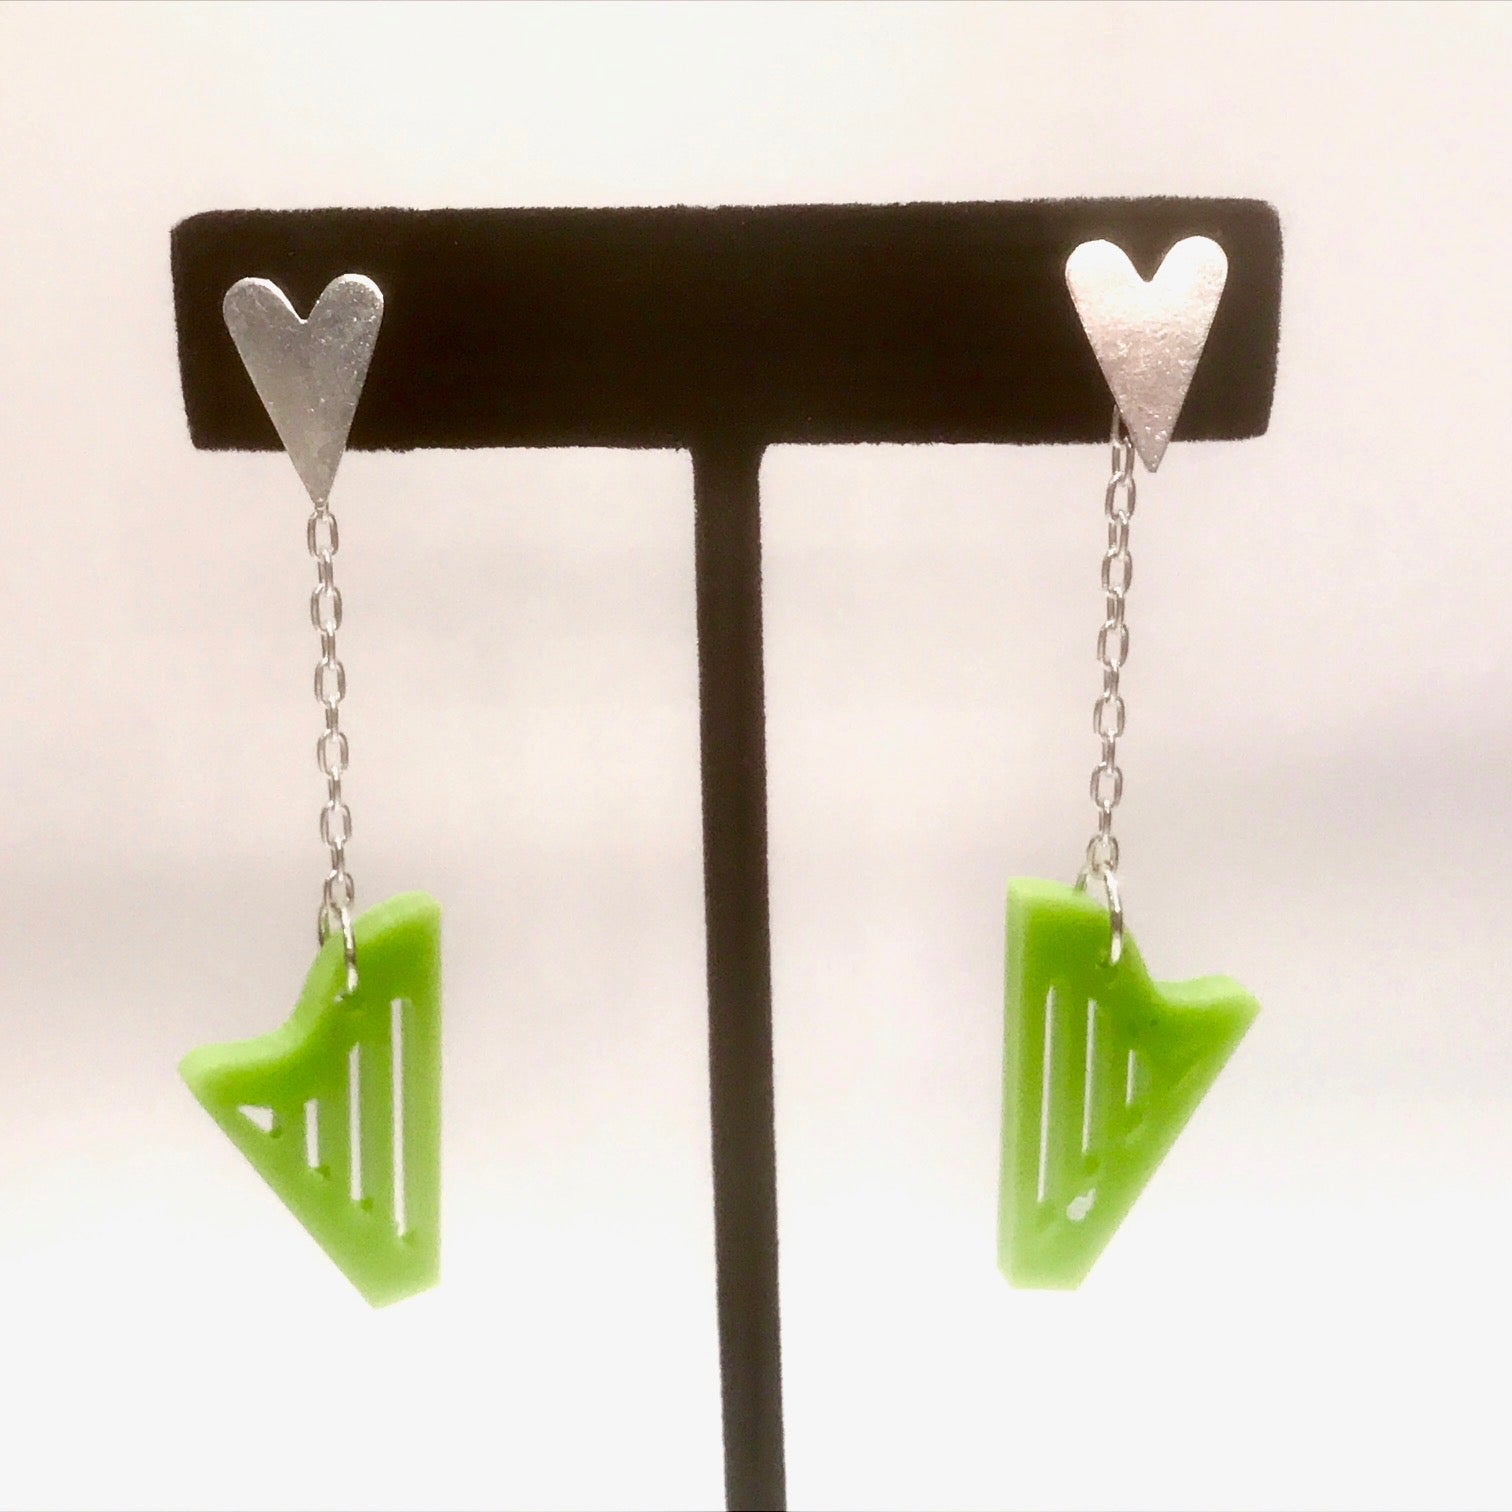 STERLING SILVER & GREEN ACRYLIC CLASSIC HARP stud earrings 30% OFF • LIMITED QUANTITY